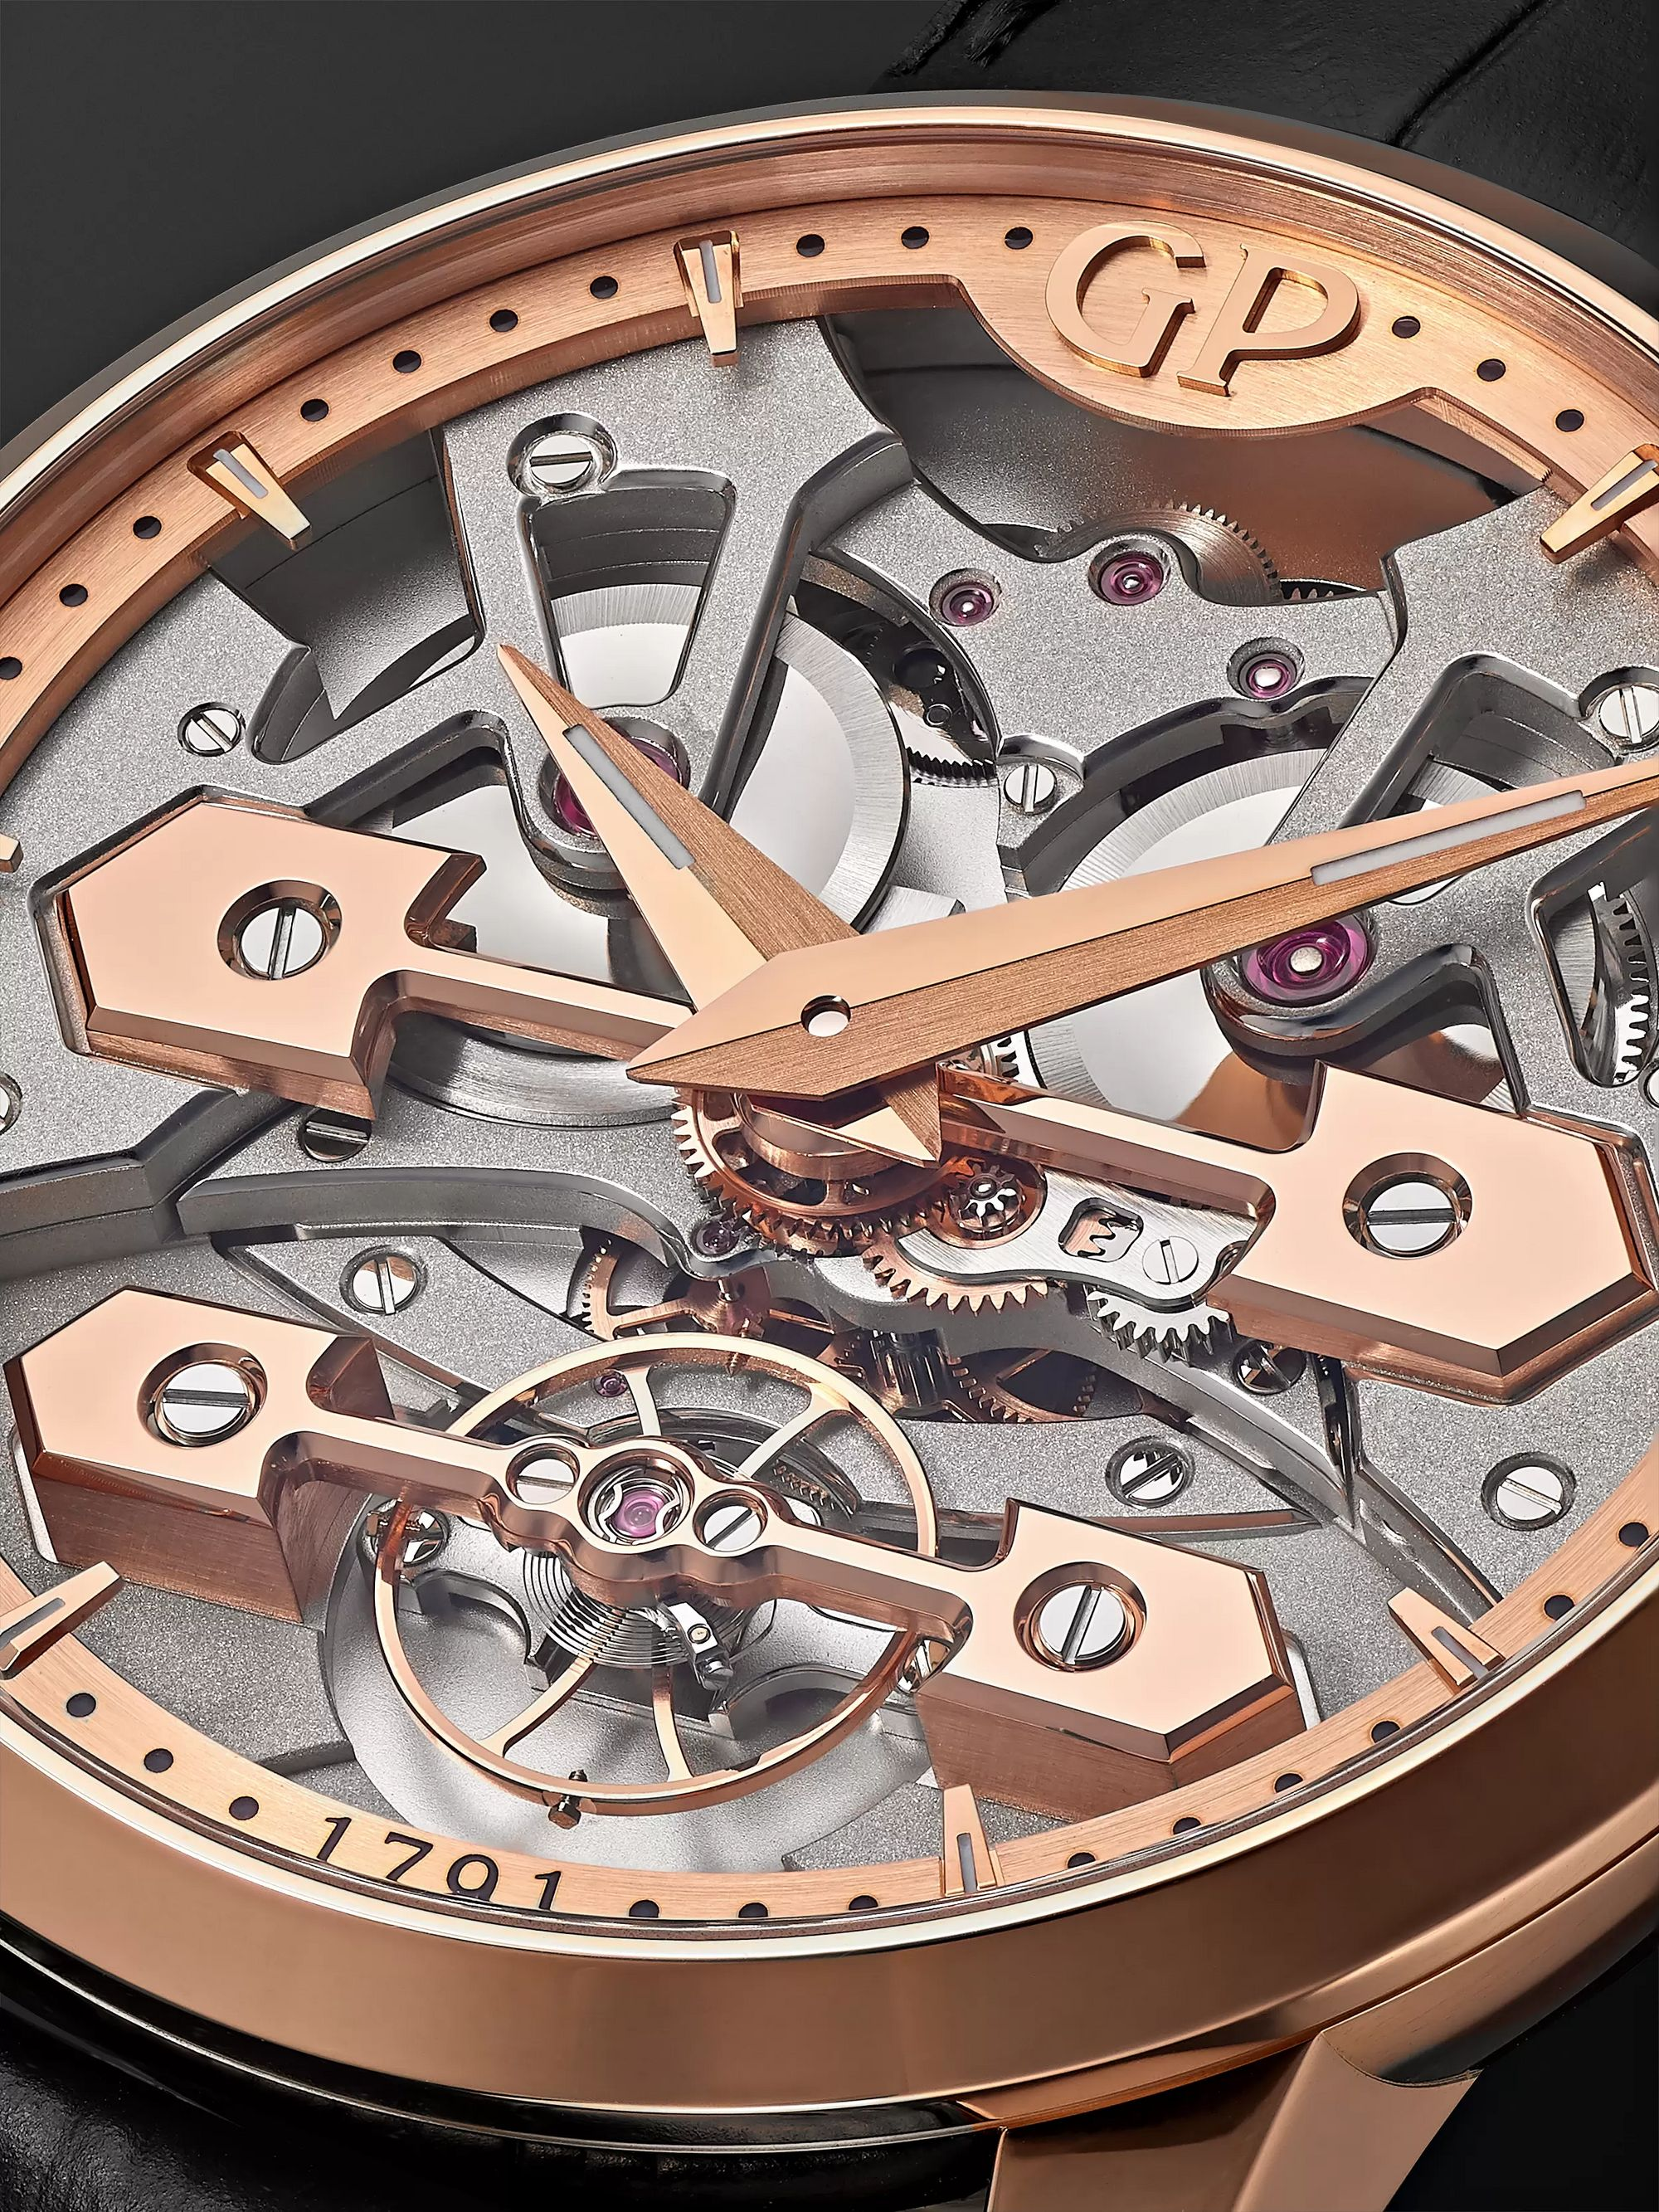 Girard-Perregaux Classic Bridges Automatic Skeleton 45mm Rose Gold and Alligator Watch, Ref. No. 86000-52-001-BB6A